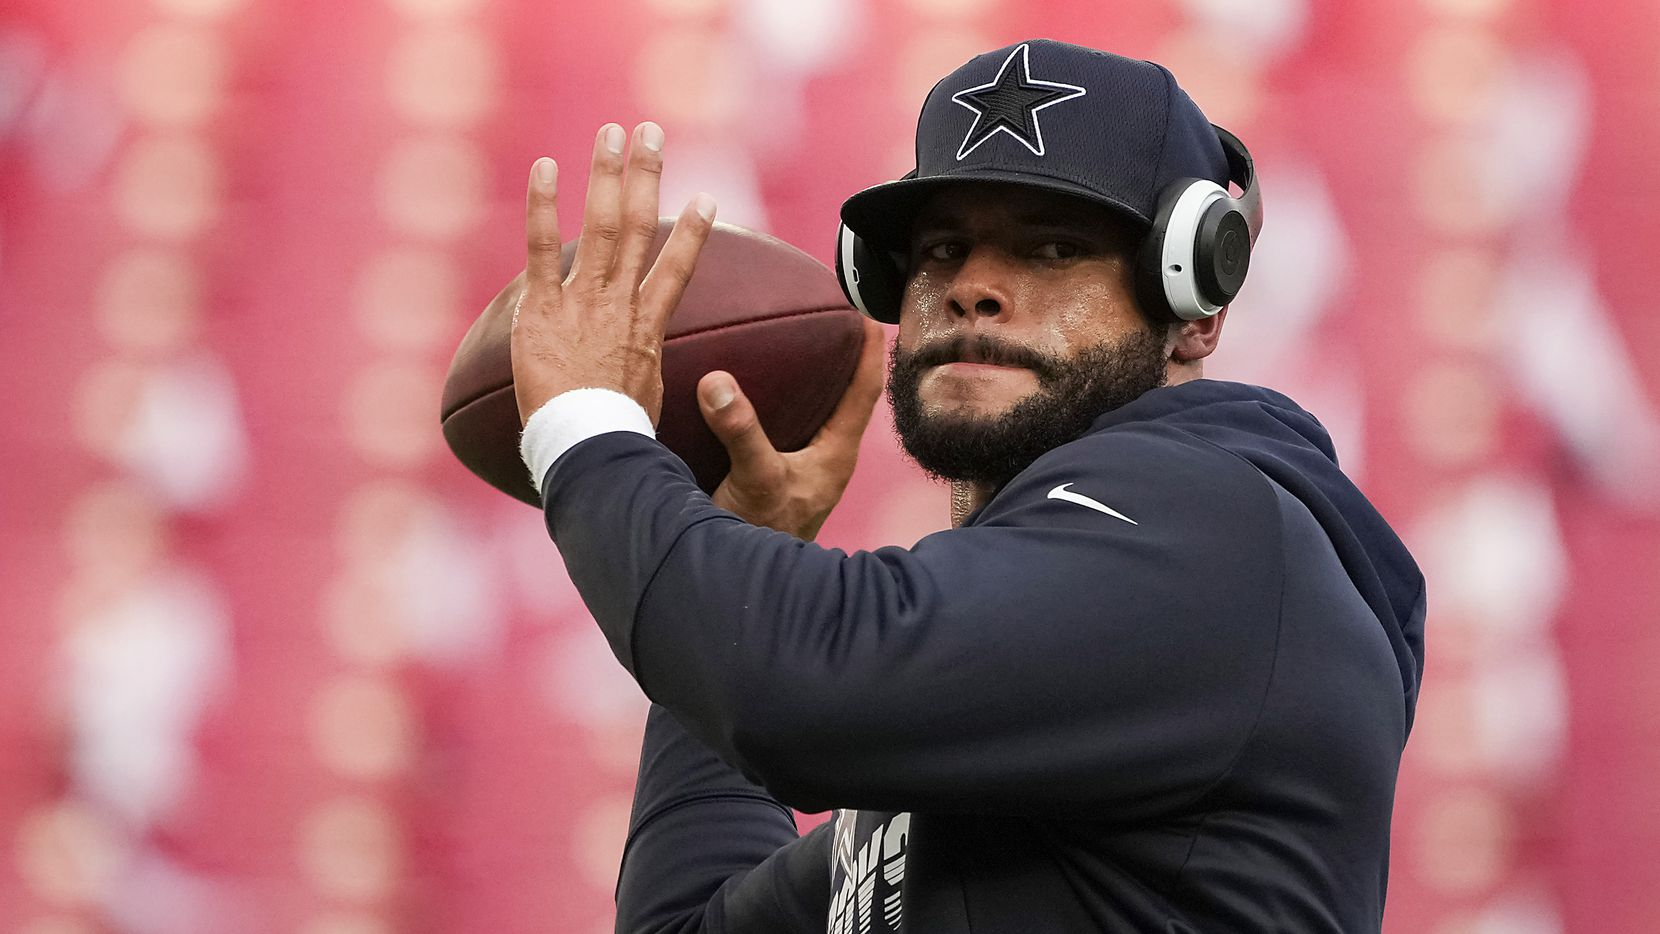 Dallas Cowboys quarterback Dak Prescott warms up before an NFL football game against the Tampa Bay Buccaneers at Raymond James Stadium on Thursday, Sept. 9, 2021, in Tampa, Fla.